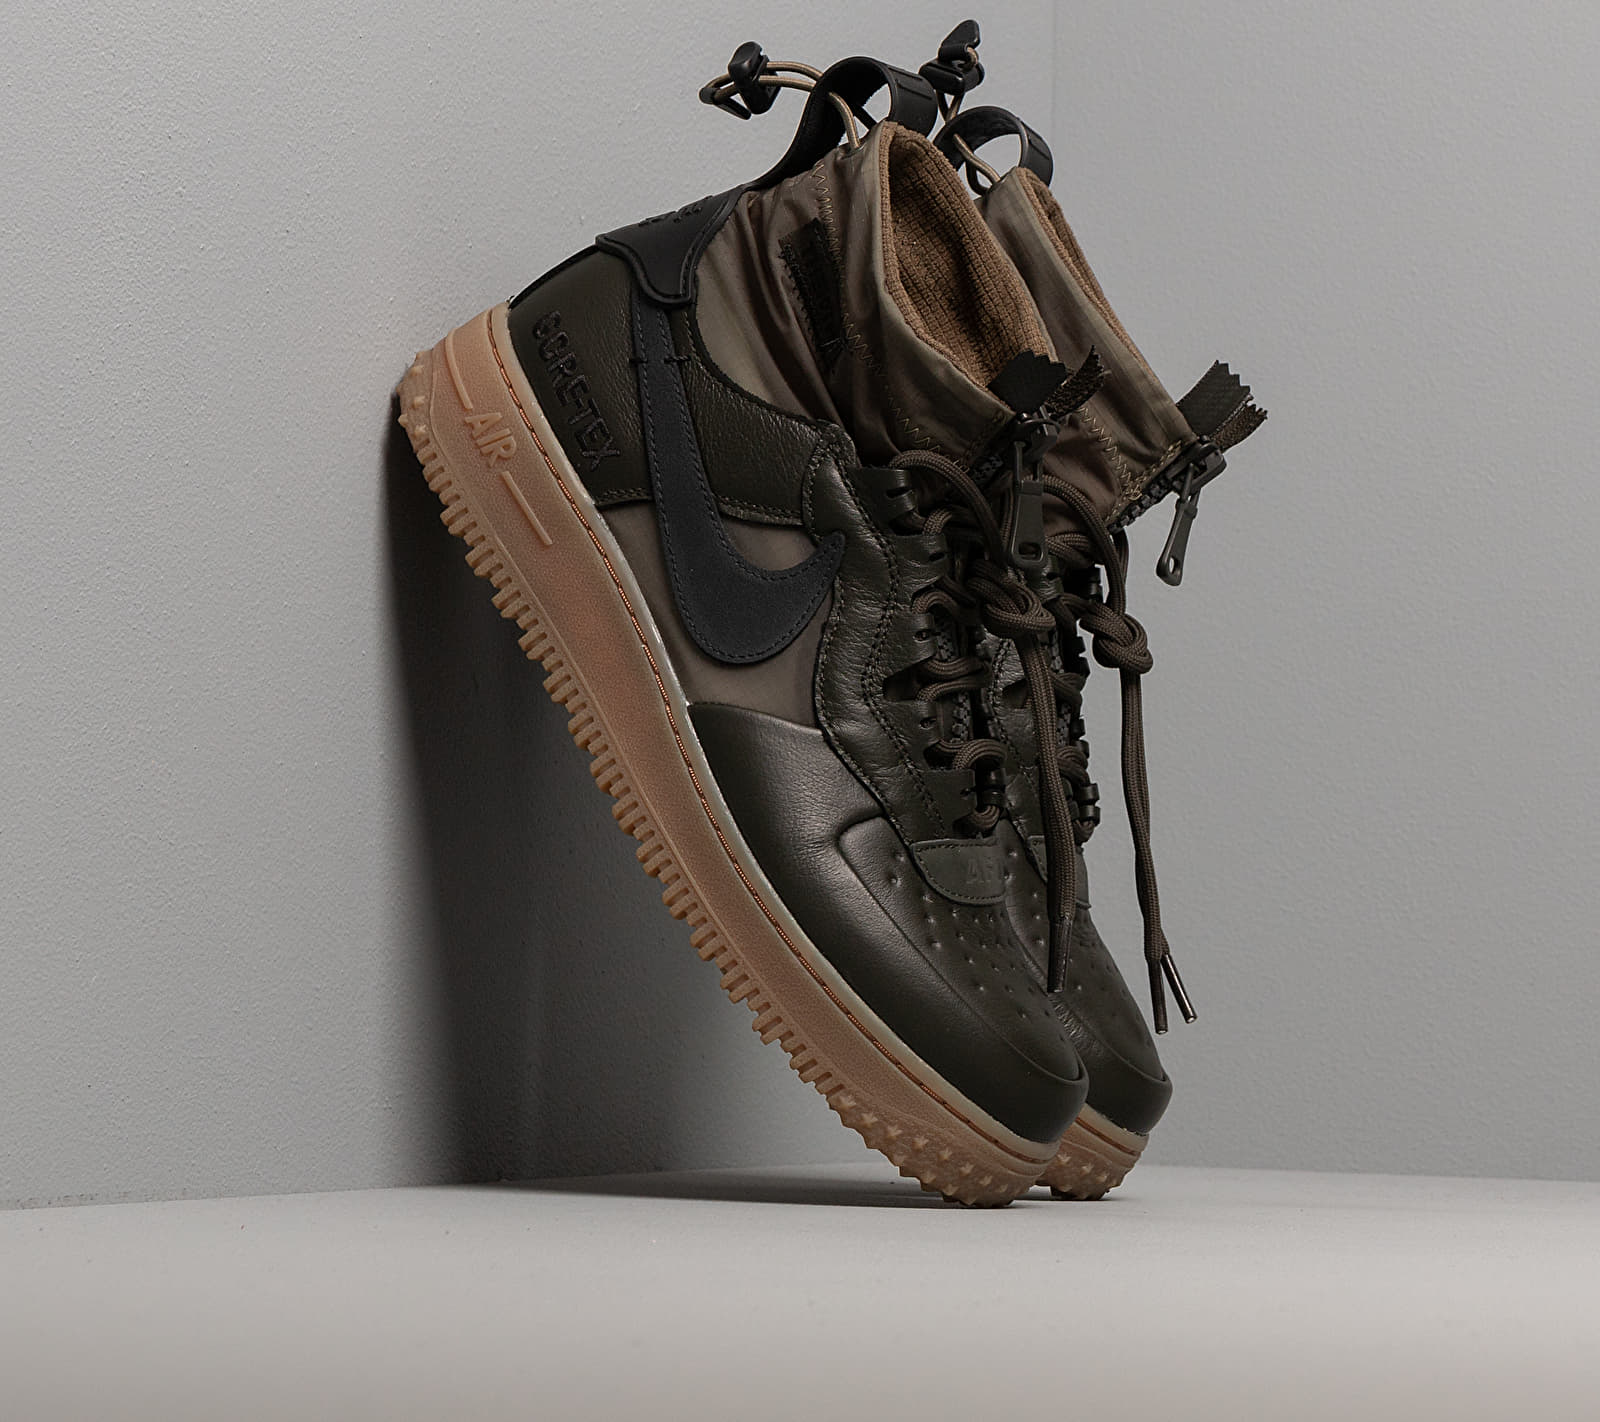 Nike Air Force 1 Wtr GTX Sequoia/ Black-Medium Olive-Gum Med Brown EUR 42